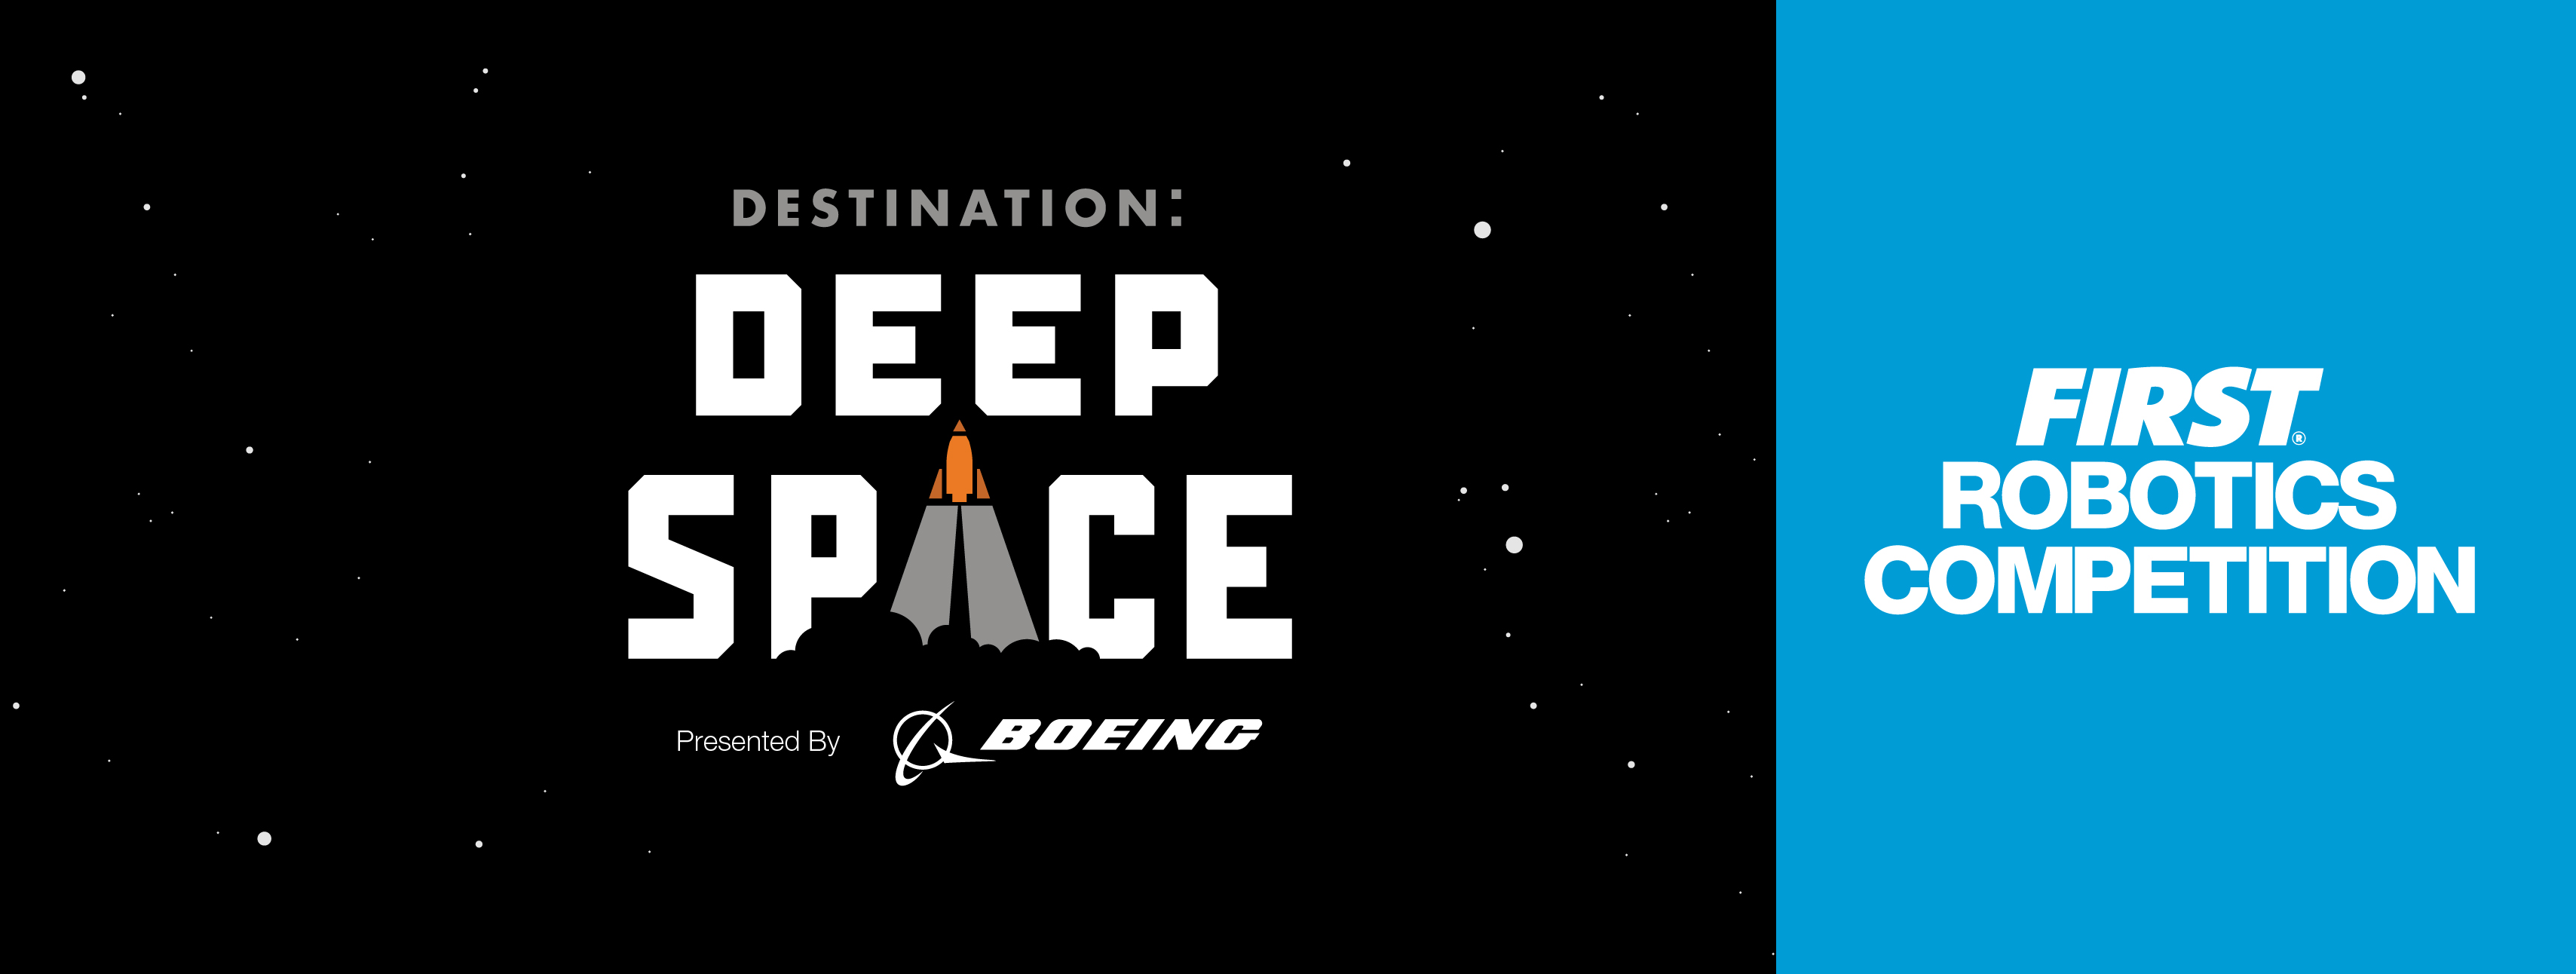 Details of DESTINATION: DEEP SPACE 2019 Robotics Game Revealed to 100,000 students